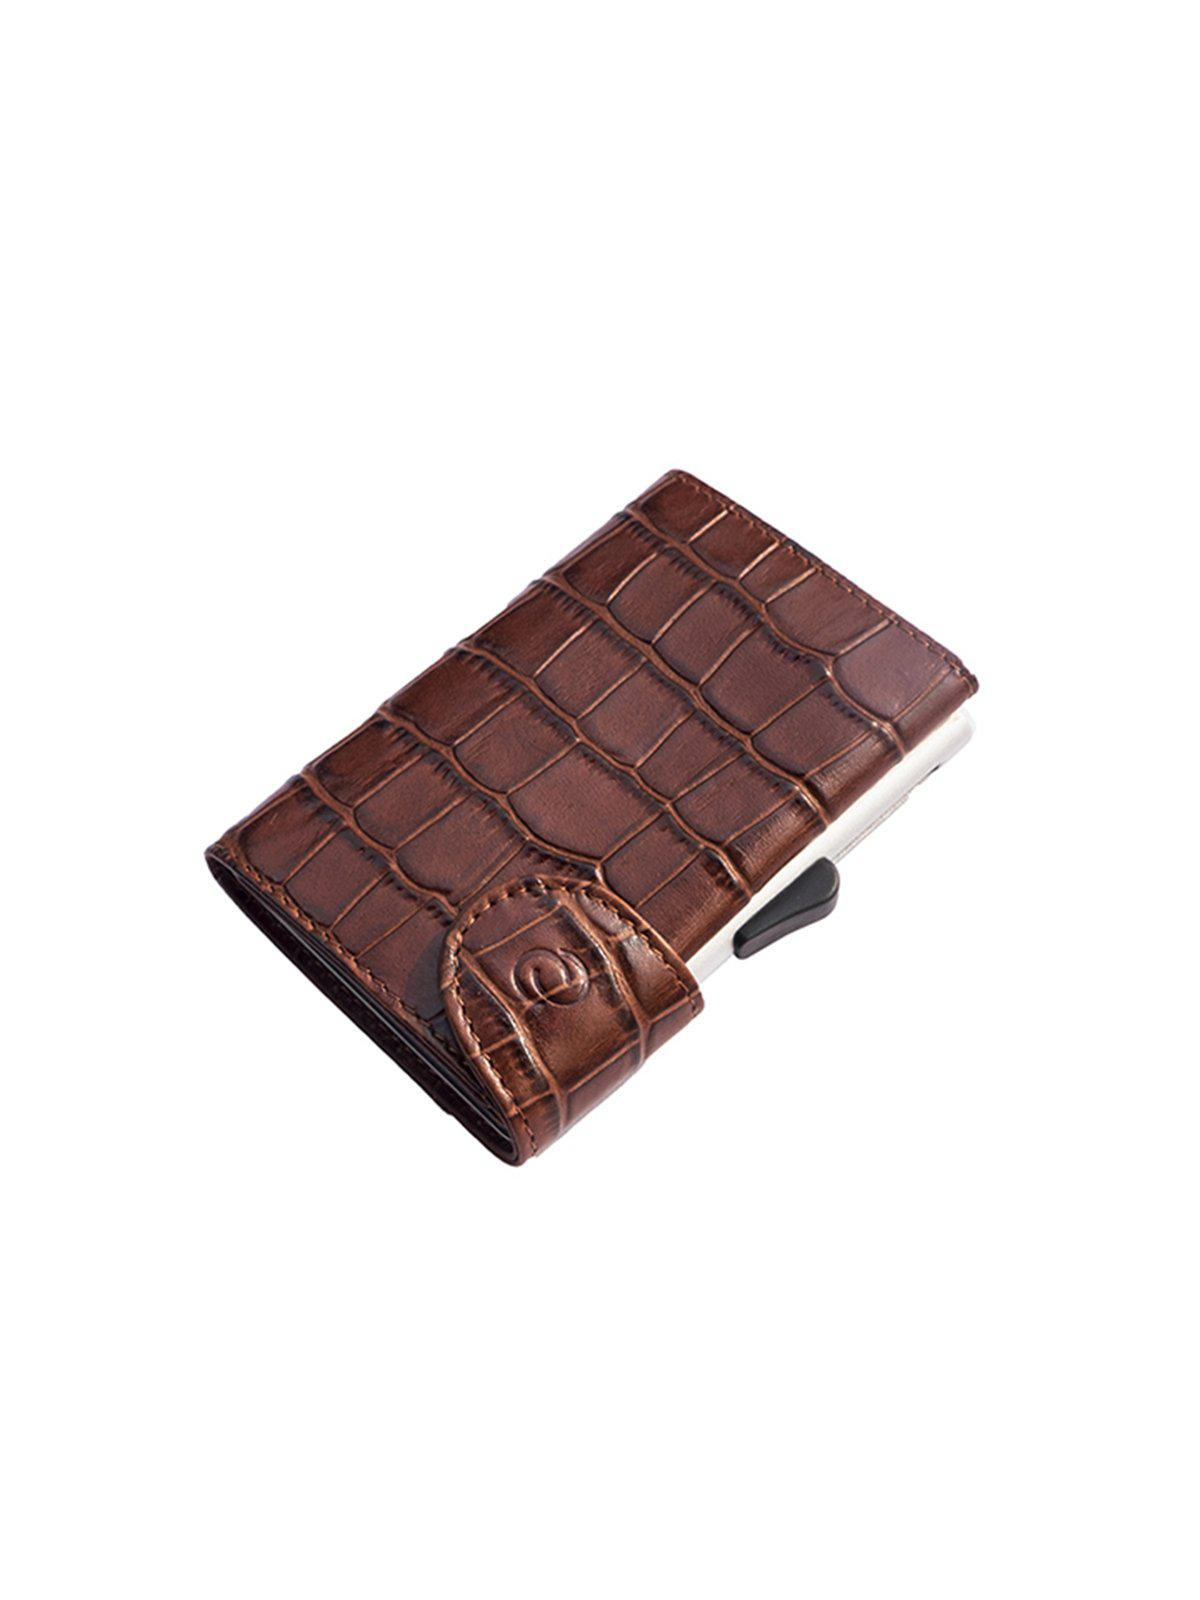 C-Secure Croco Leather RFID Wallet Brown - MORE by Morello Indonesia